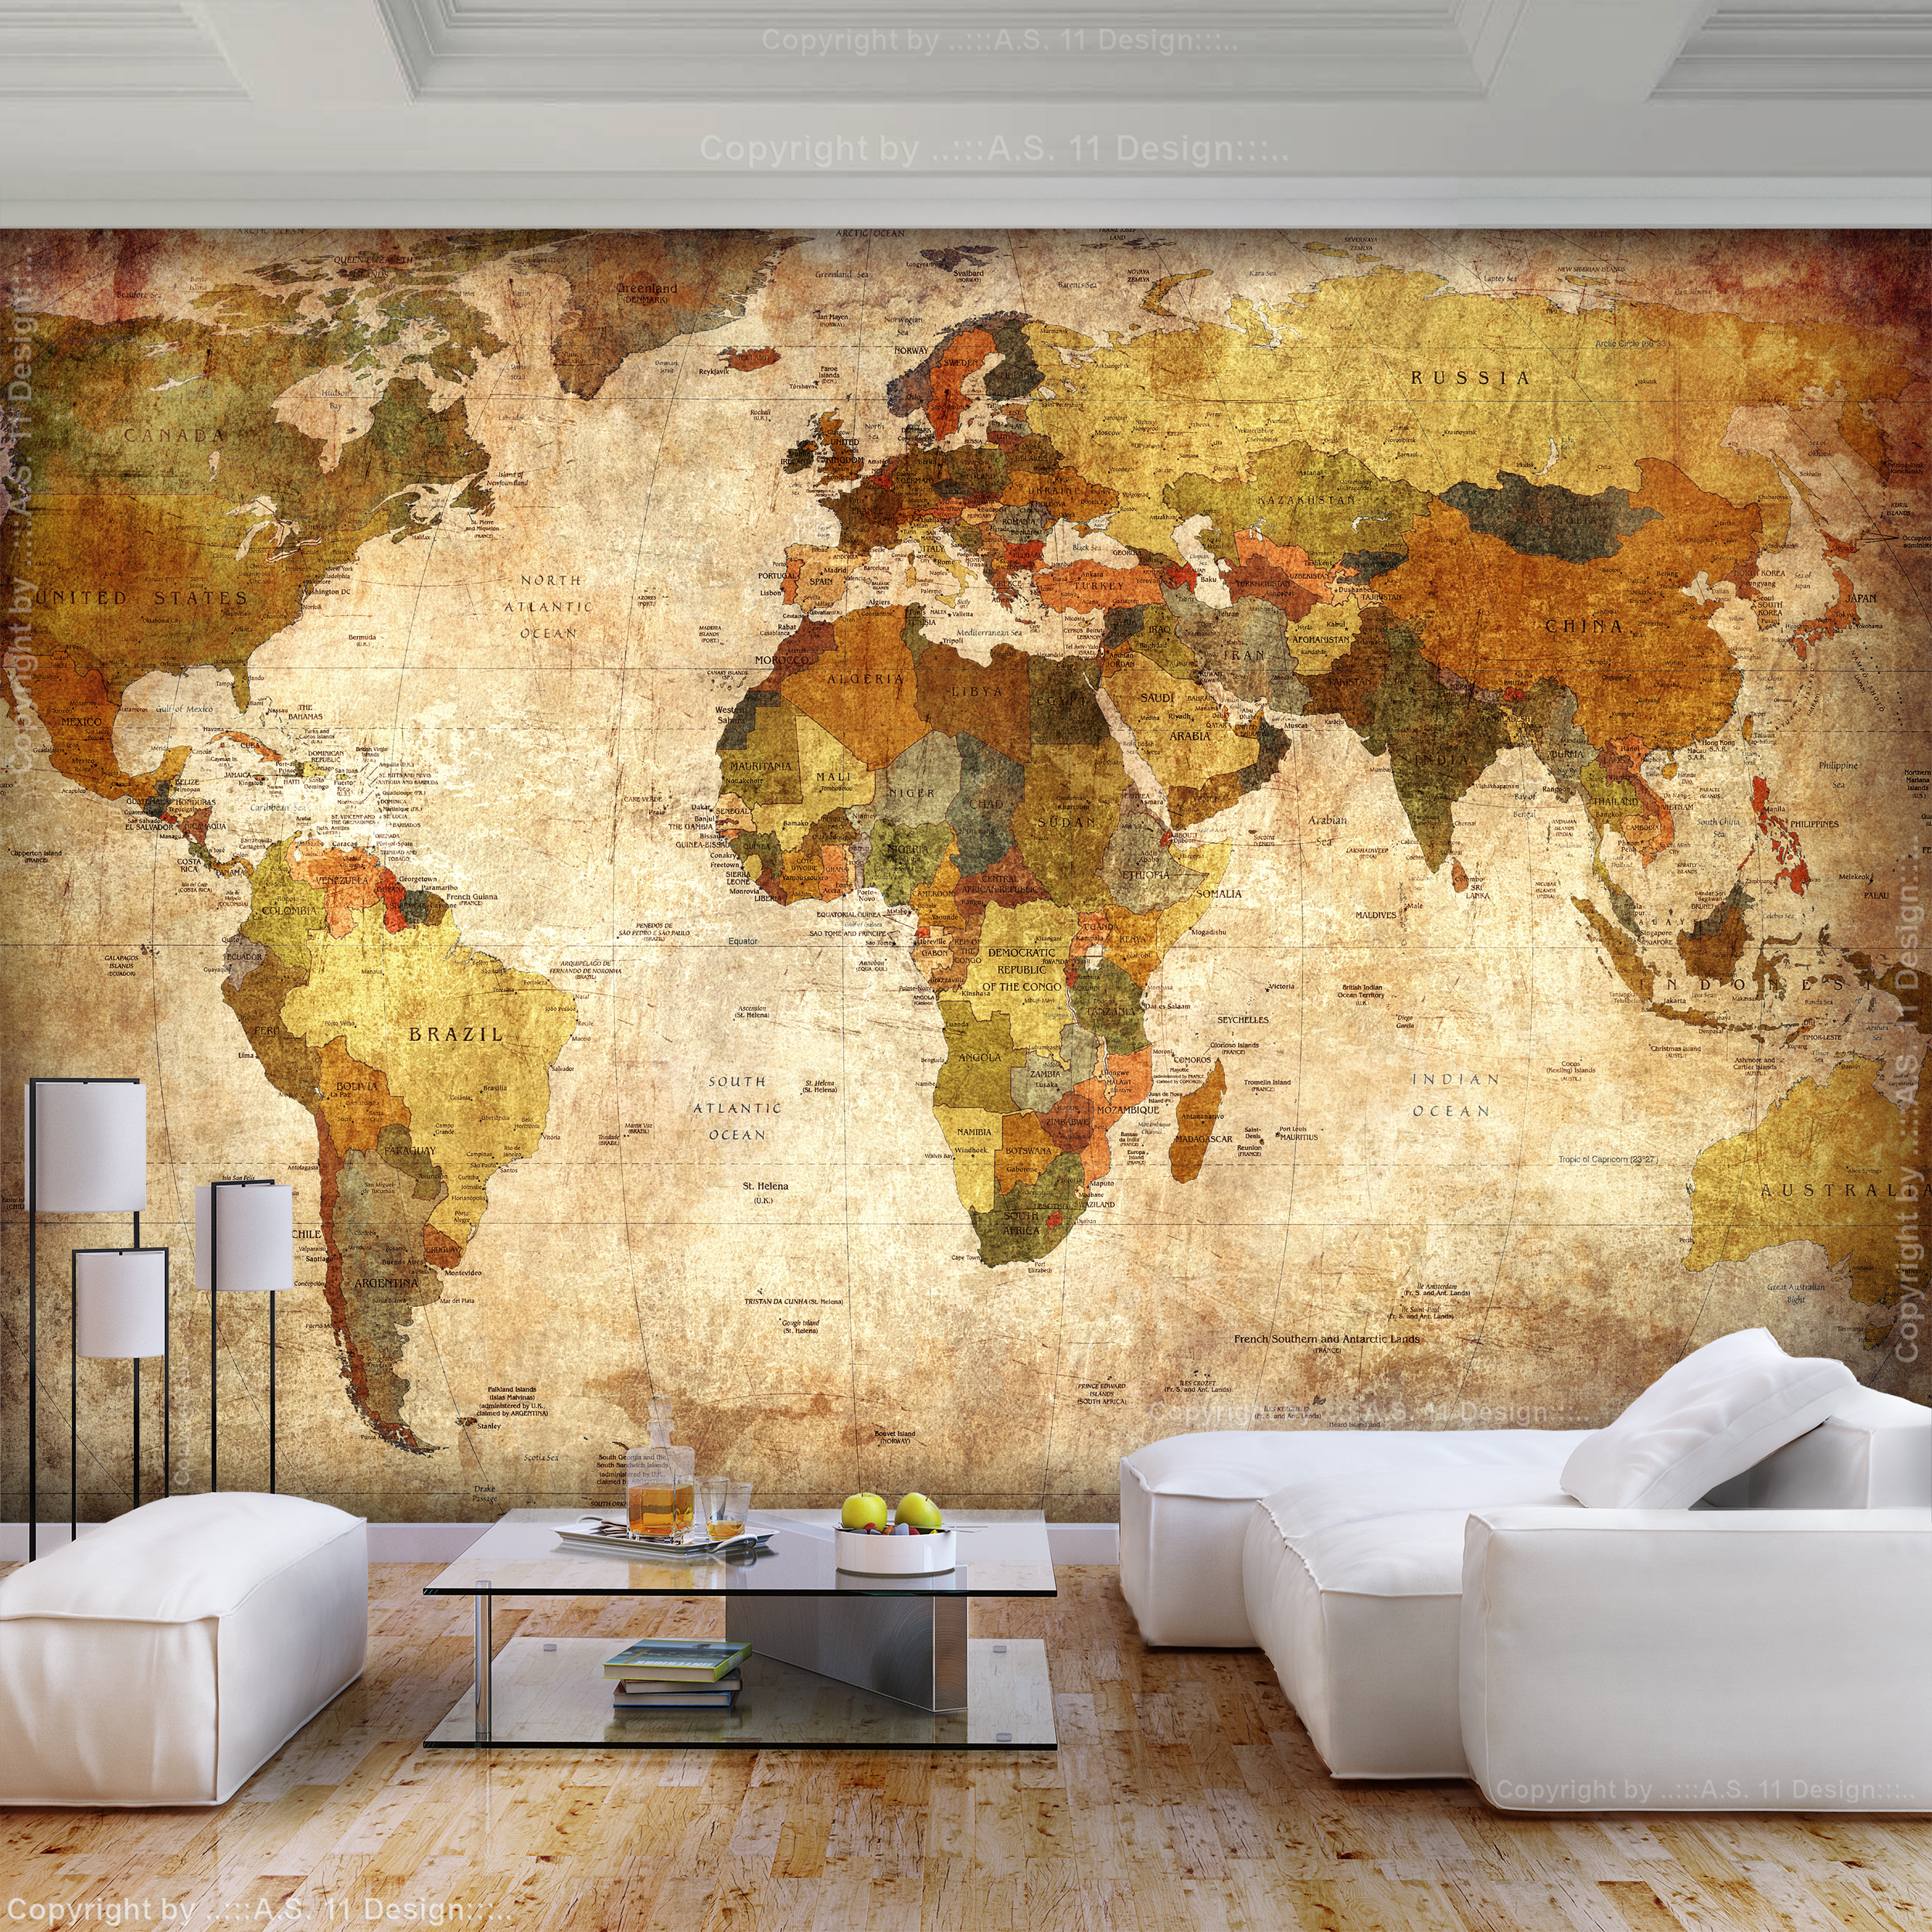 vlies fototapete weltkarte vintage retro alt welt map tapete tapeten wandbild ebay. Black Bedroom Furniture Sets. Home Design Ideas